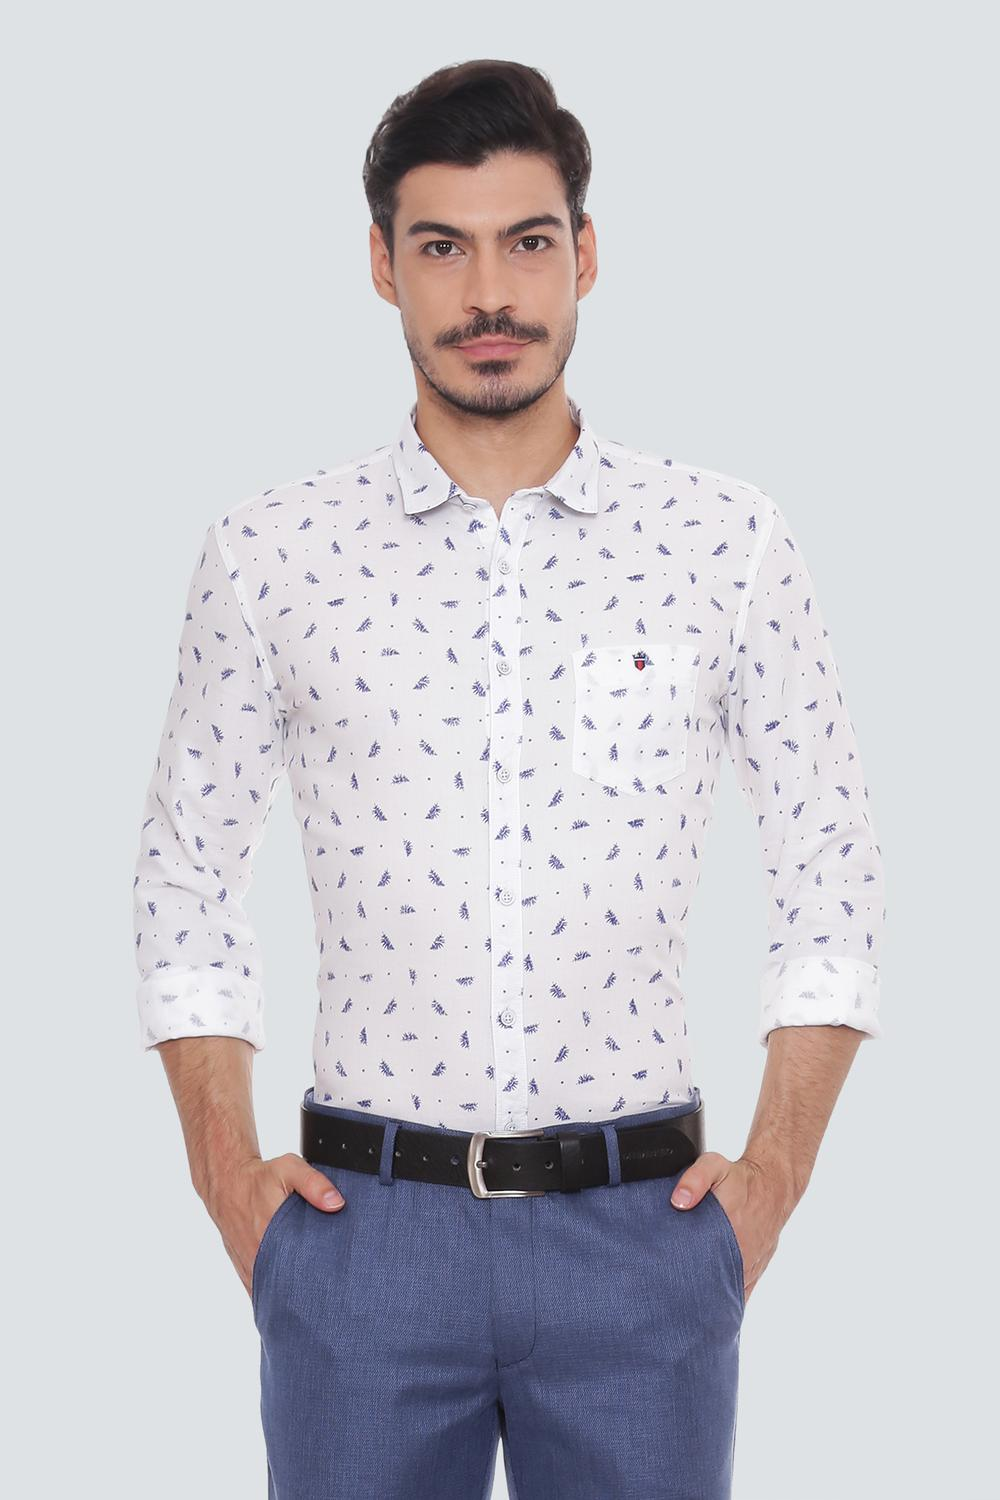 Lp Jeans Shirts Louis Philippe White Shirt For Men At Louisphilippe Com